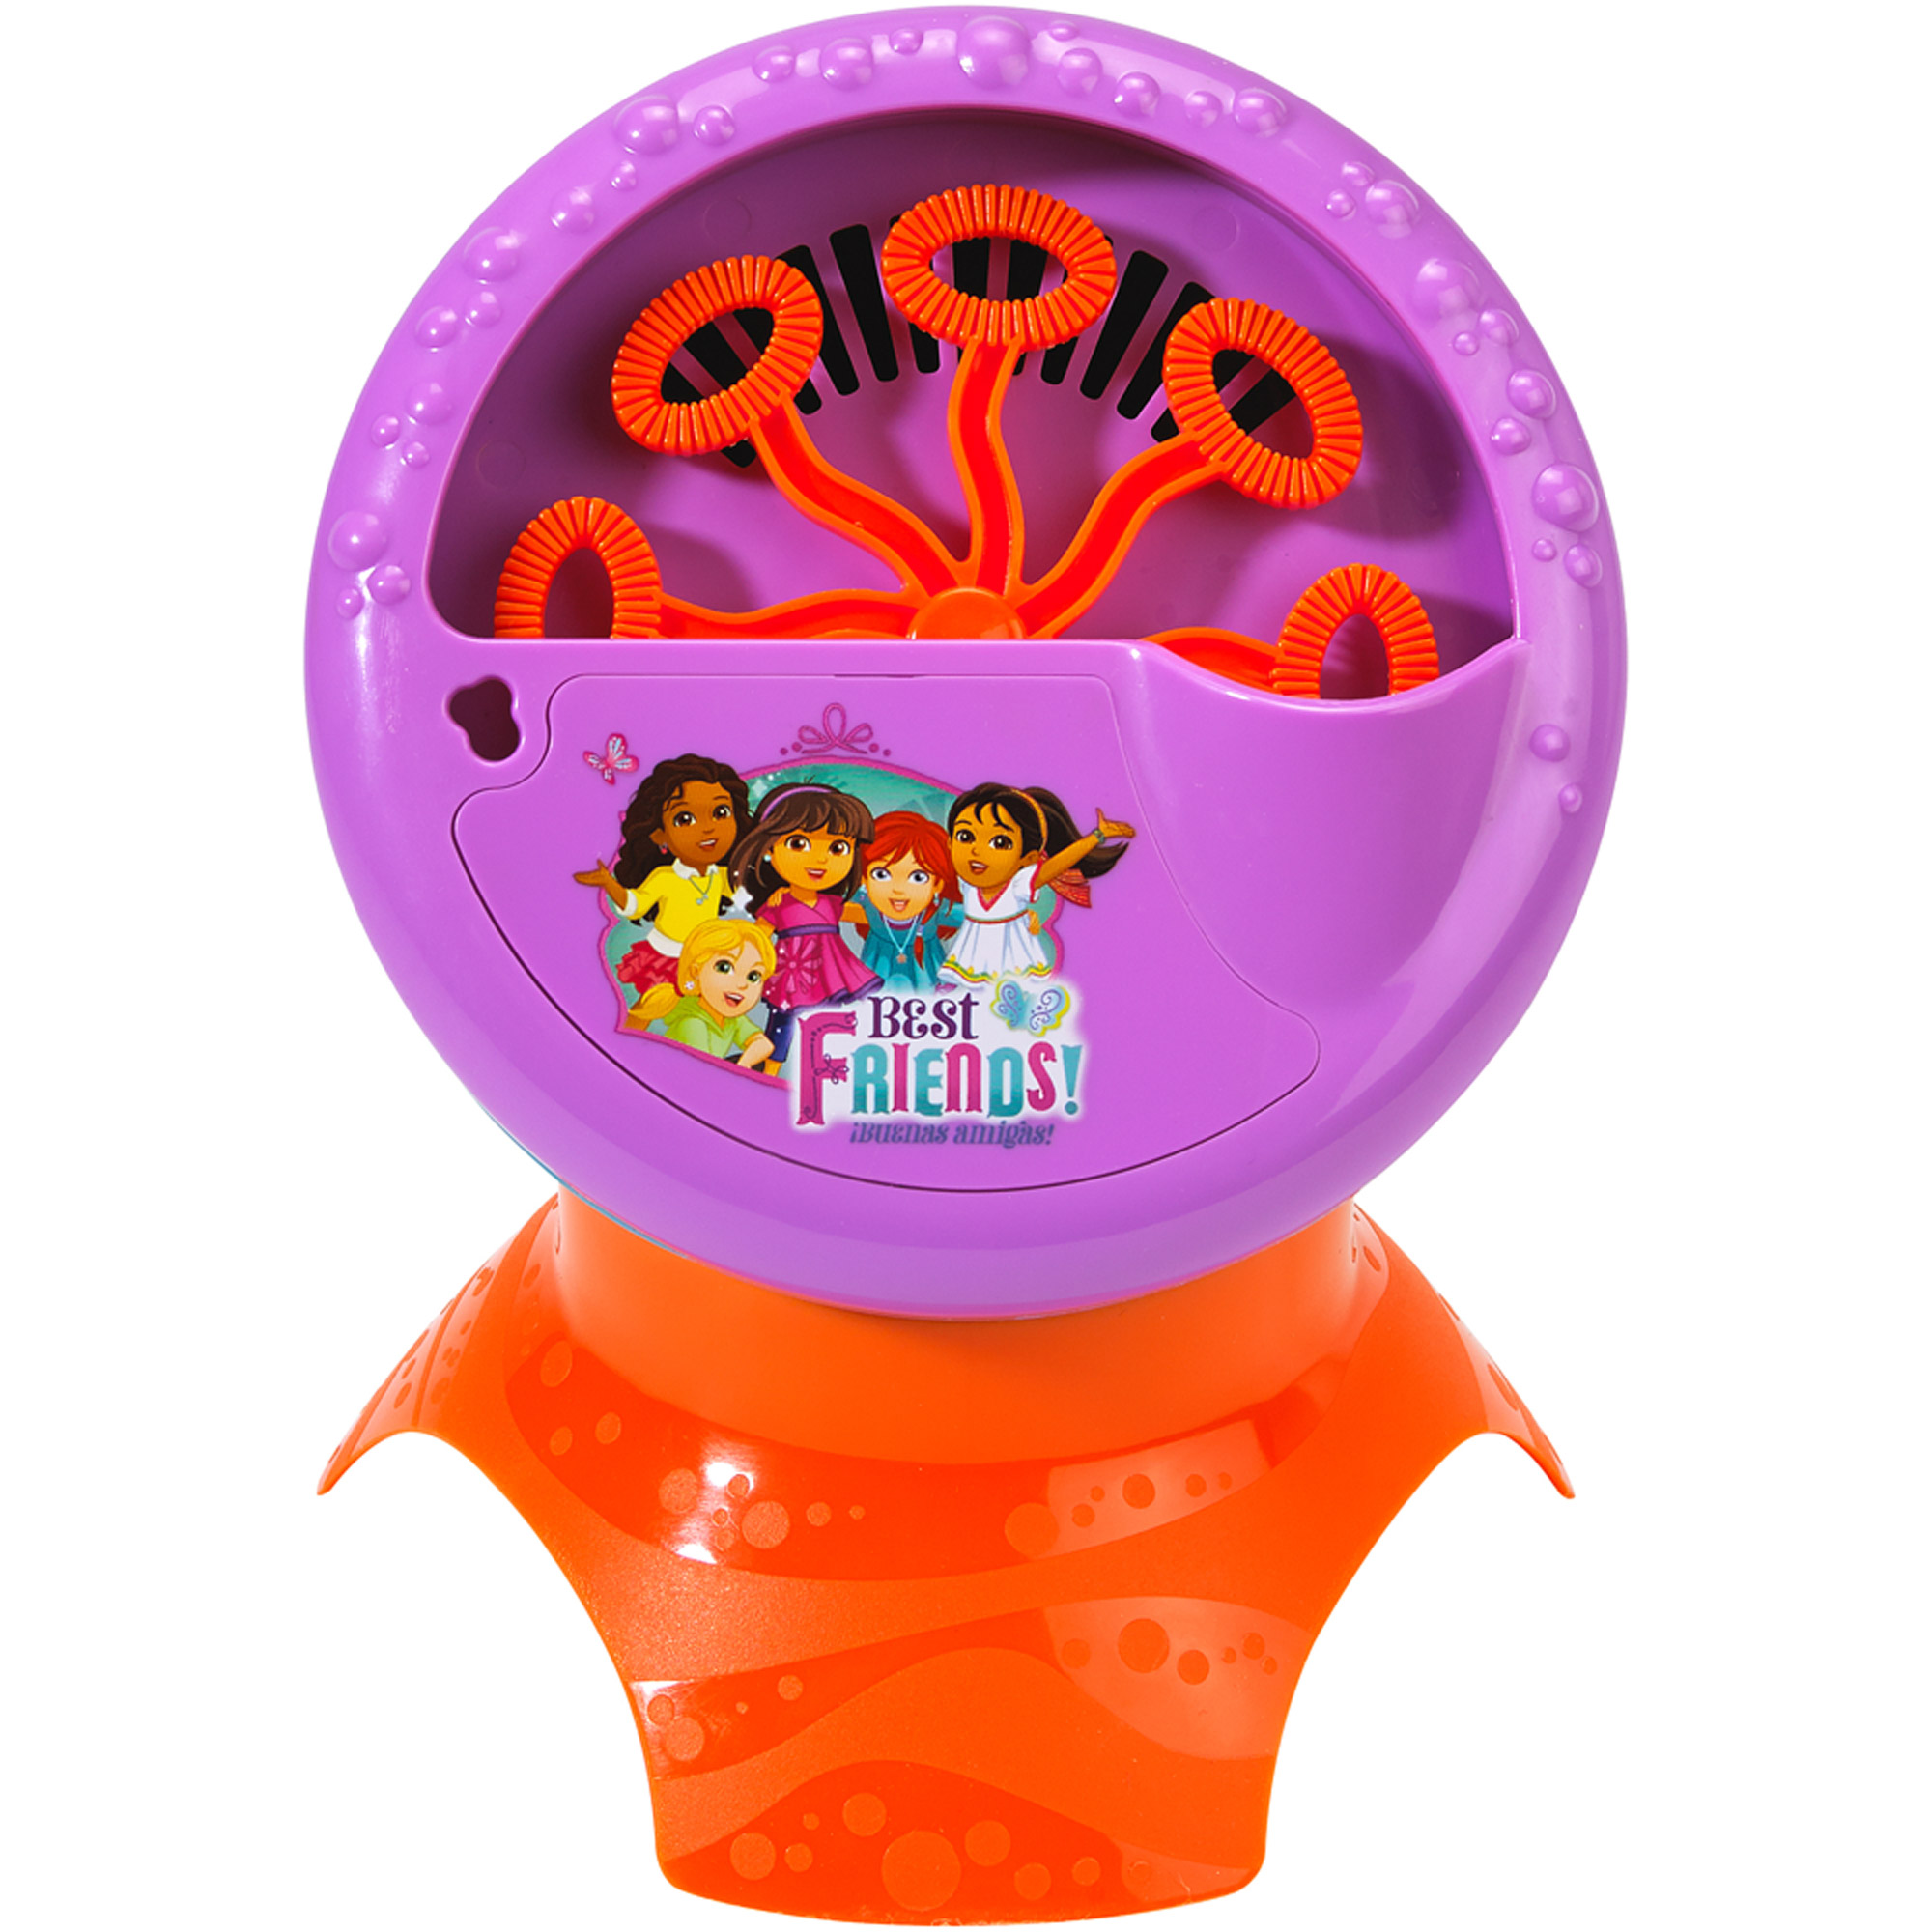 Little Kids Bubble Machine, Dora and Friends